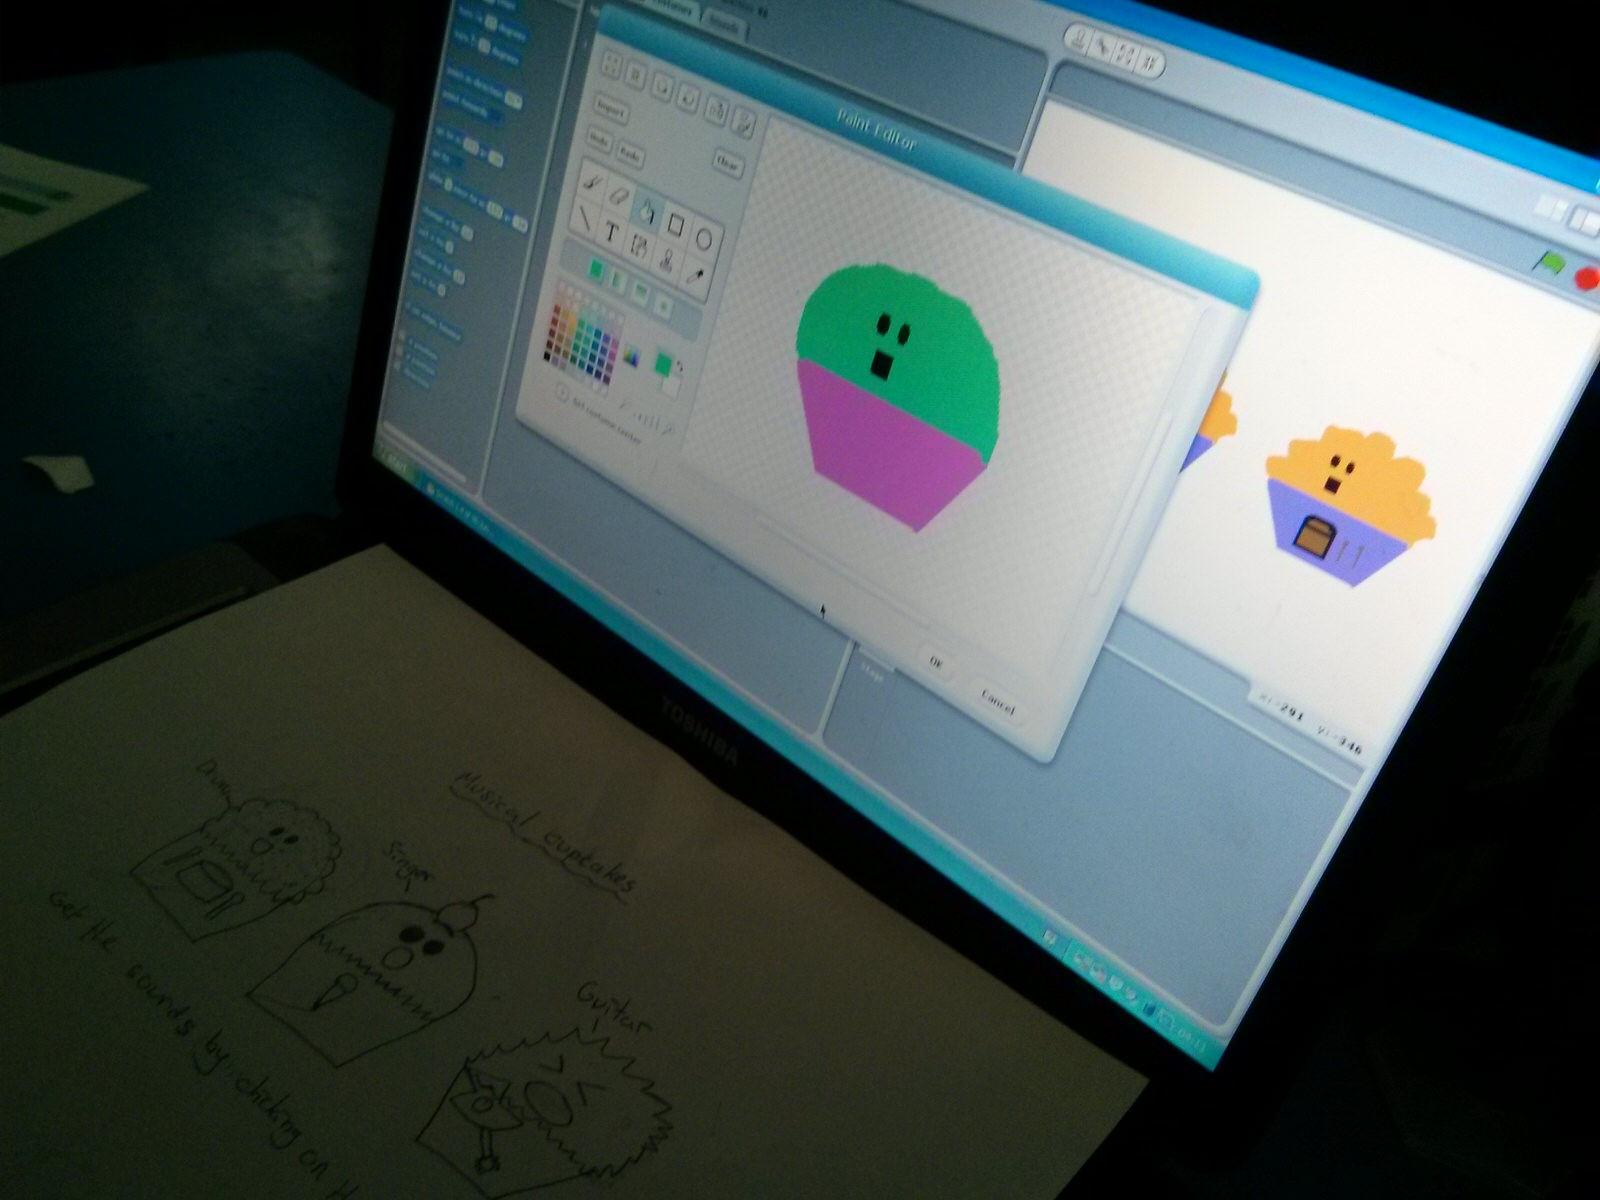 Creating digital characters in Scratch